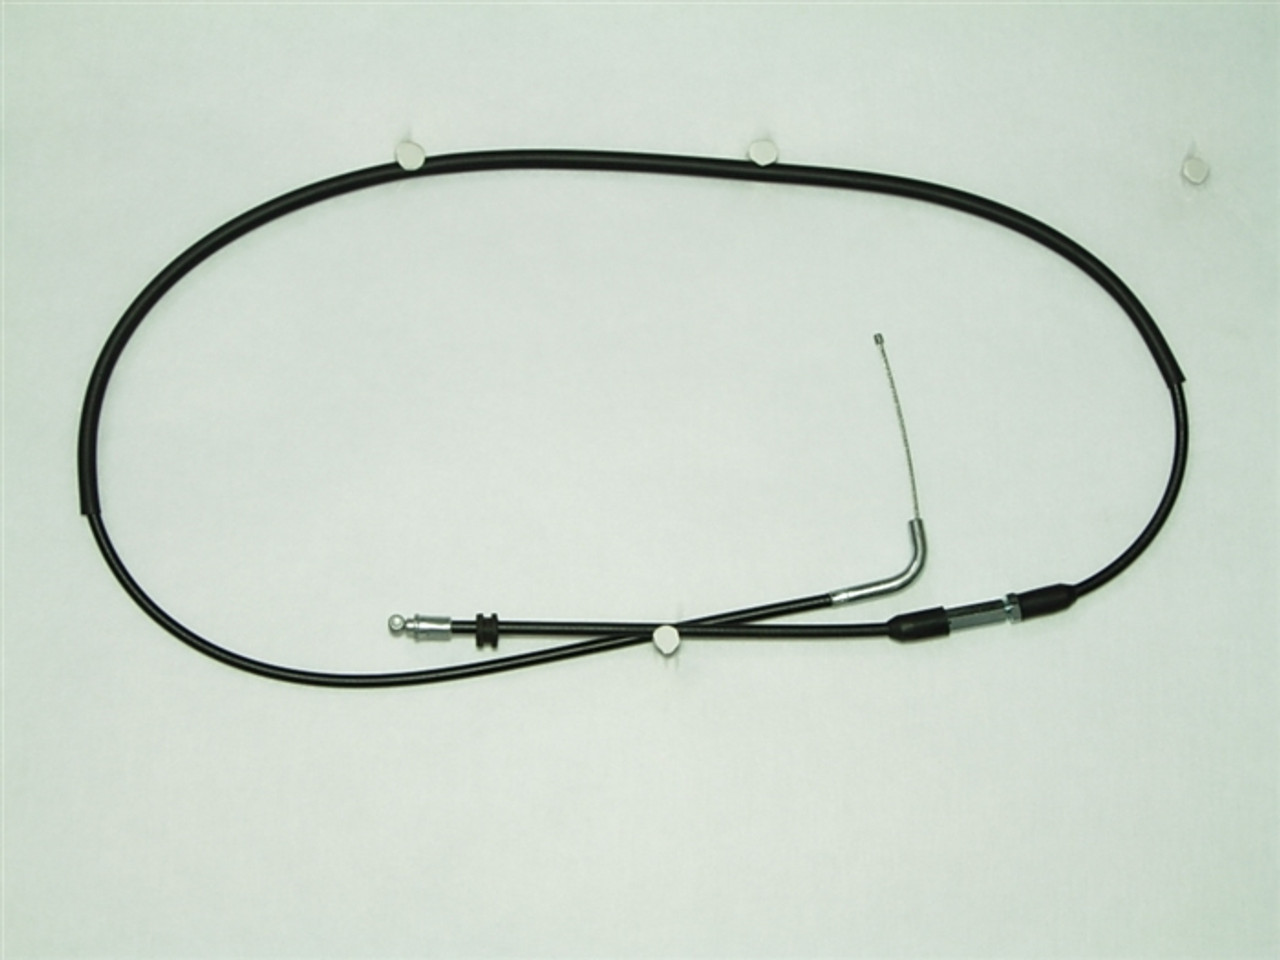 THOTTLE CABLE 11992-A111-12